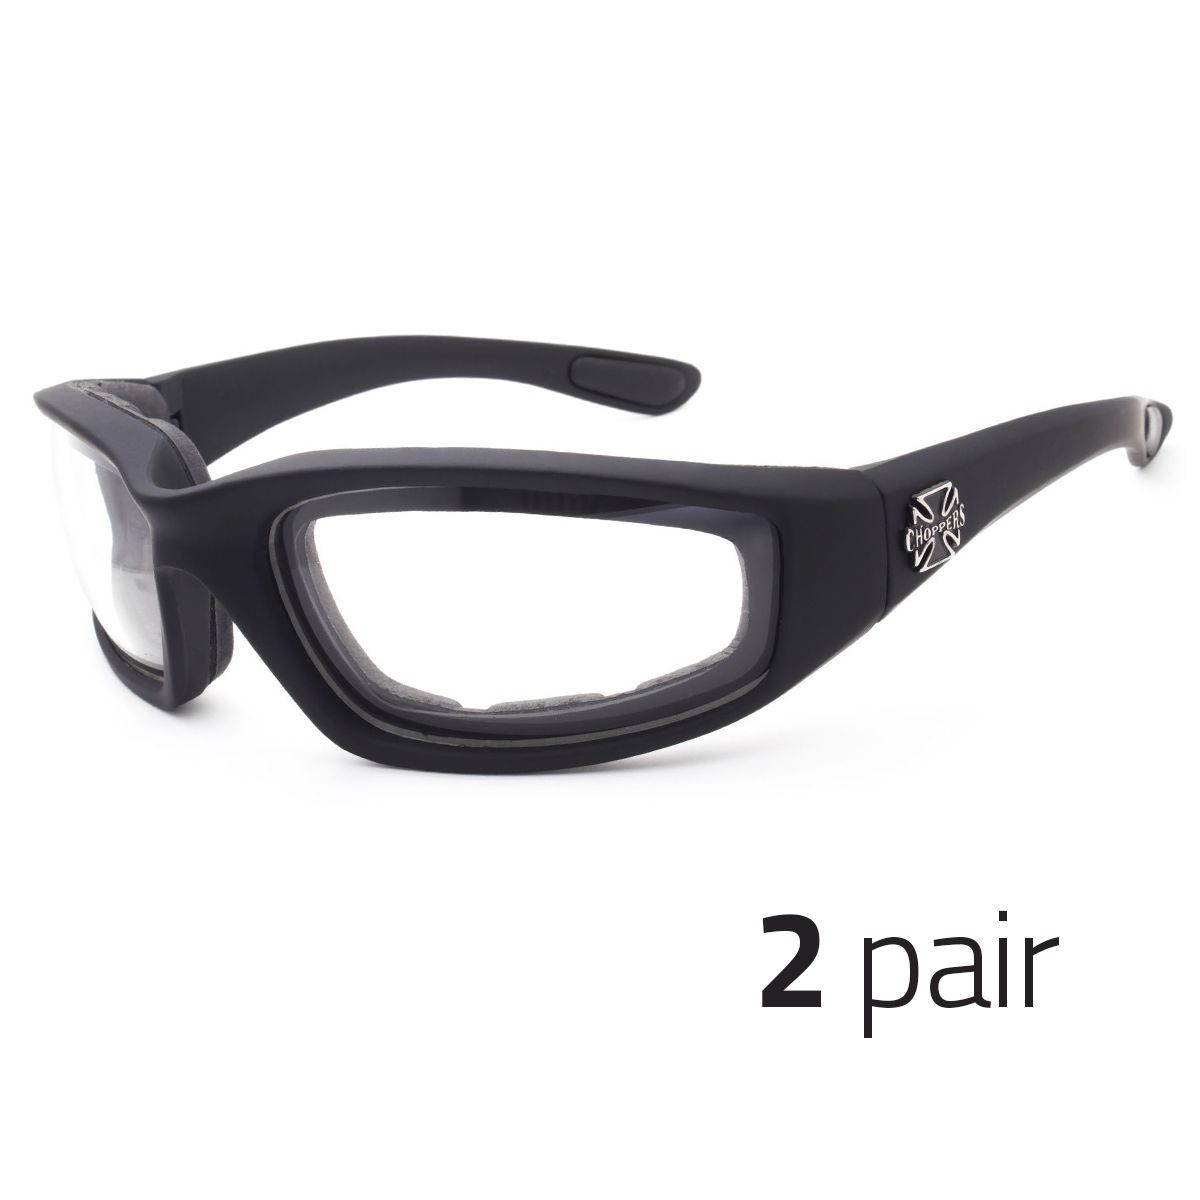 8931029b894 2 Pc Chopper Wind Resistant Sunglasses Sports Motorcycle Riding Glasses  Clear X